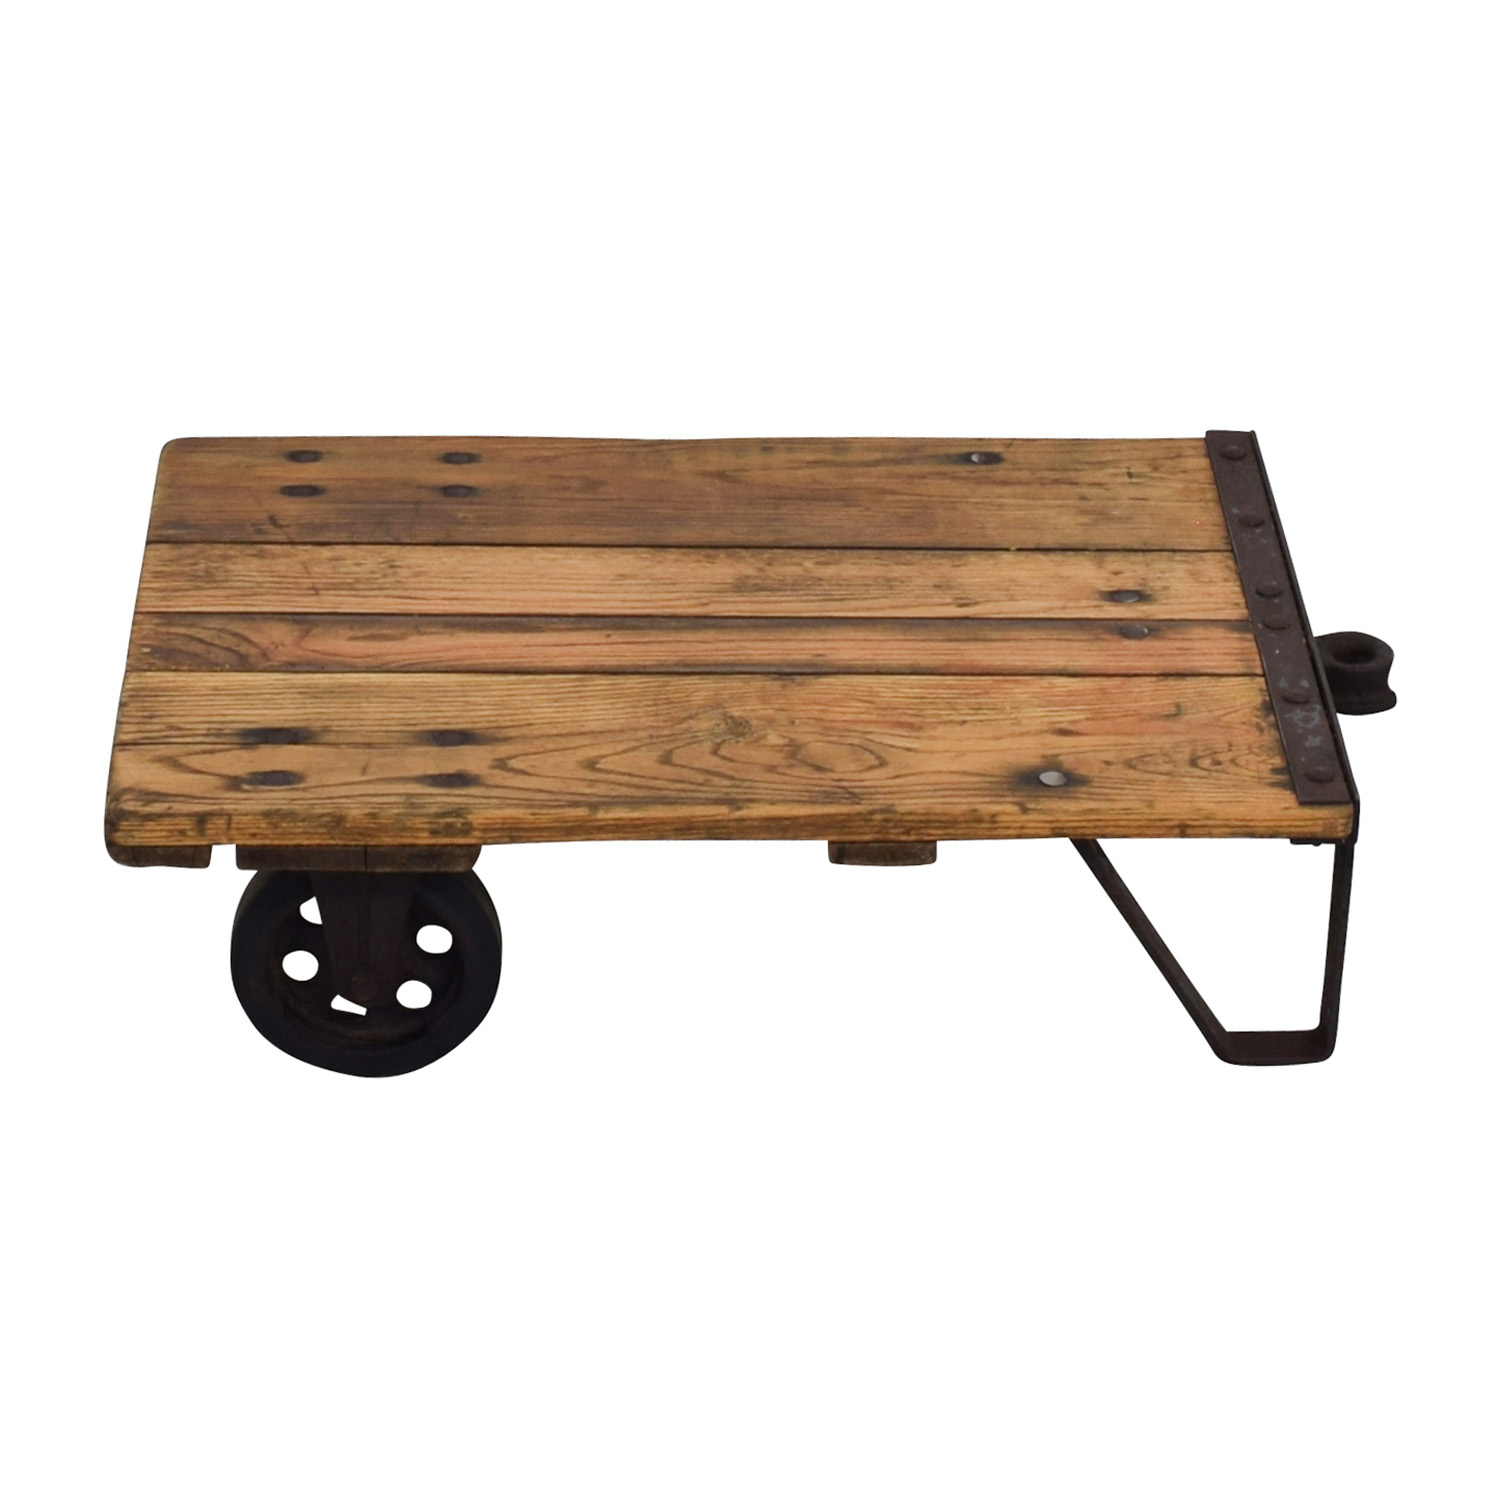 Thomas Truck & Caster Co Thomas Truck & Caster Co Restored Industrial Coffee Table used